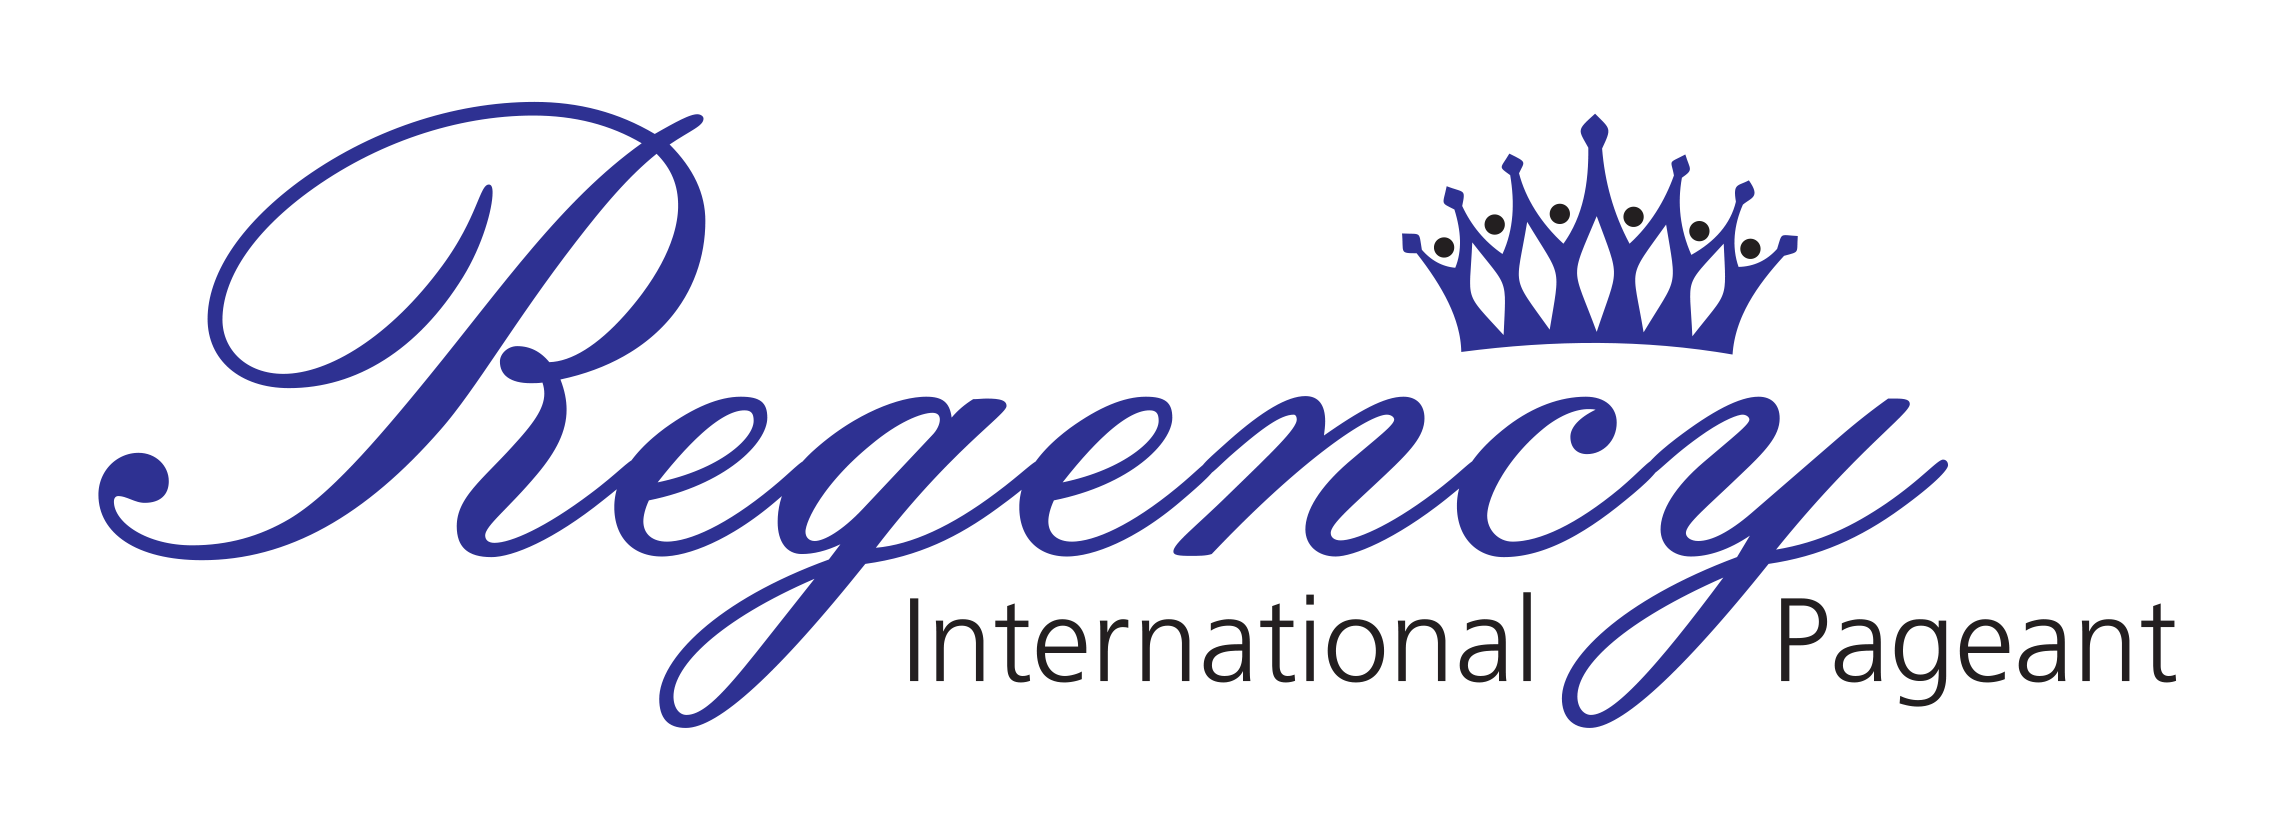 Regency International Pageant - Official Competition information and details for your pageant entry. July 17th thru 20th, 2019 in Las Vegas, NV.